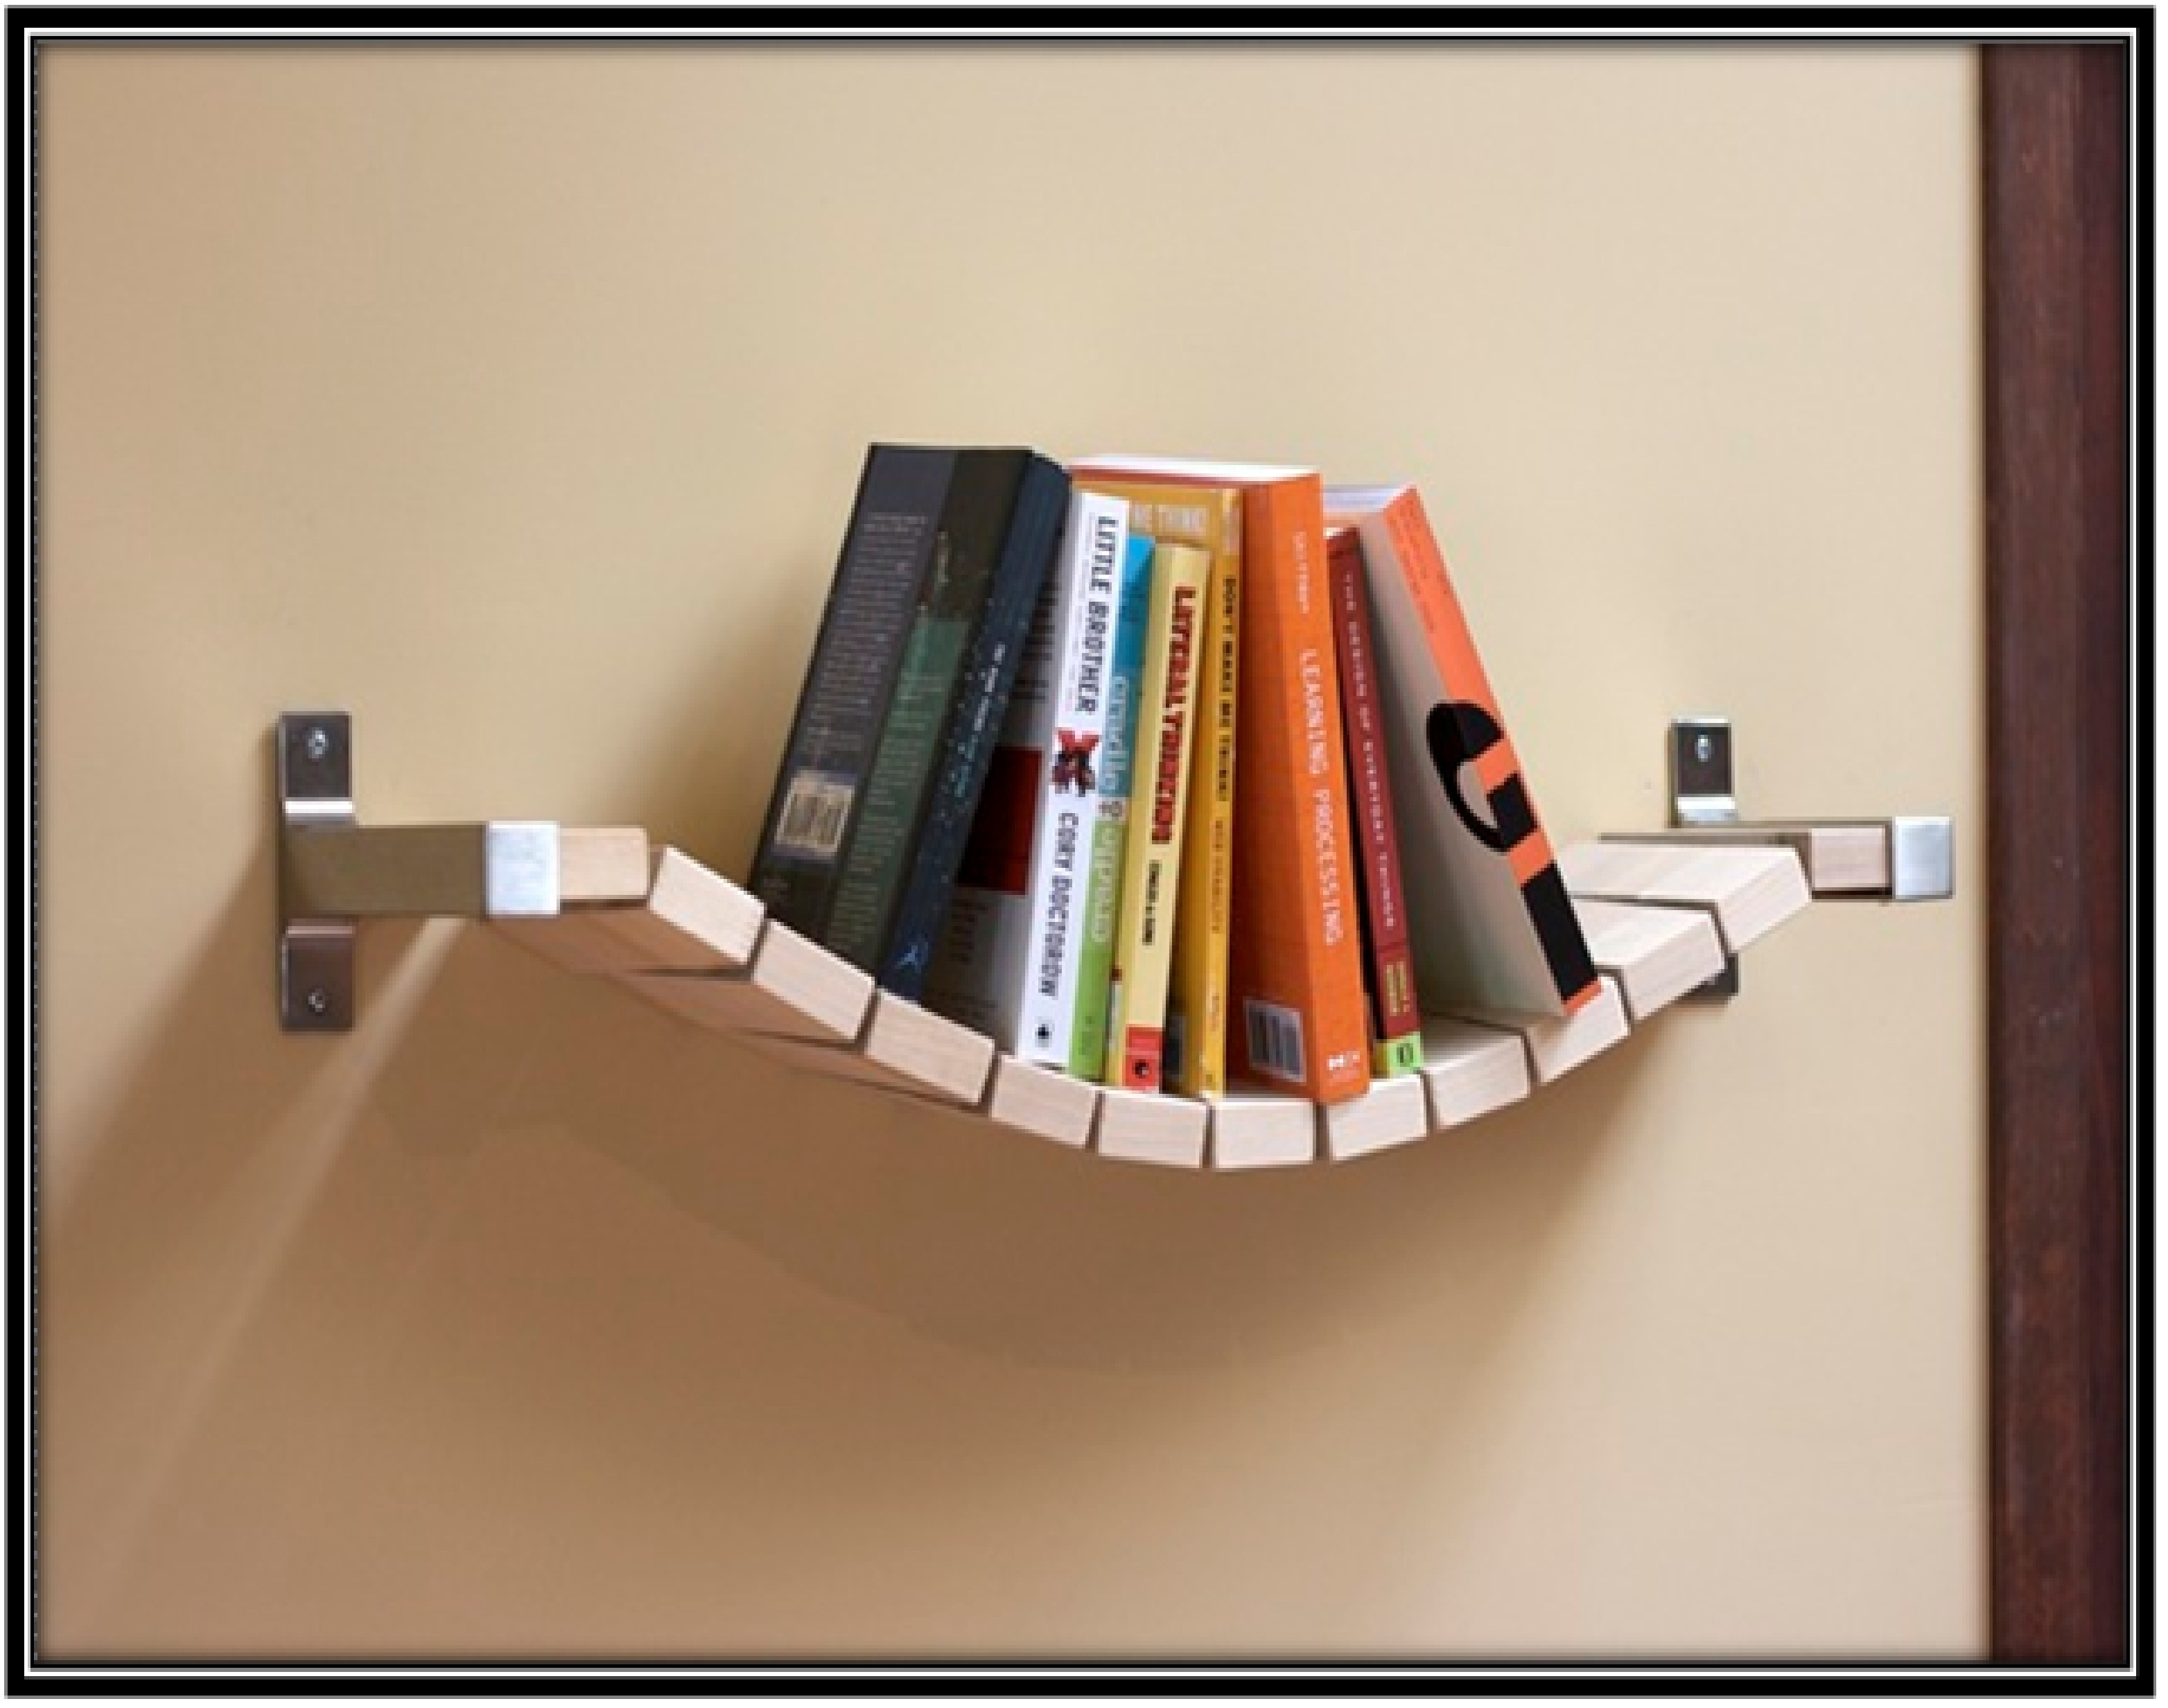 Keeping books safe - home decor ideas